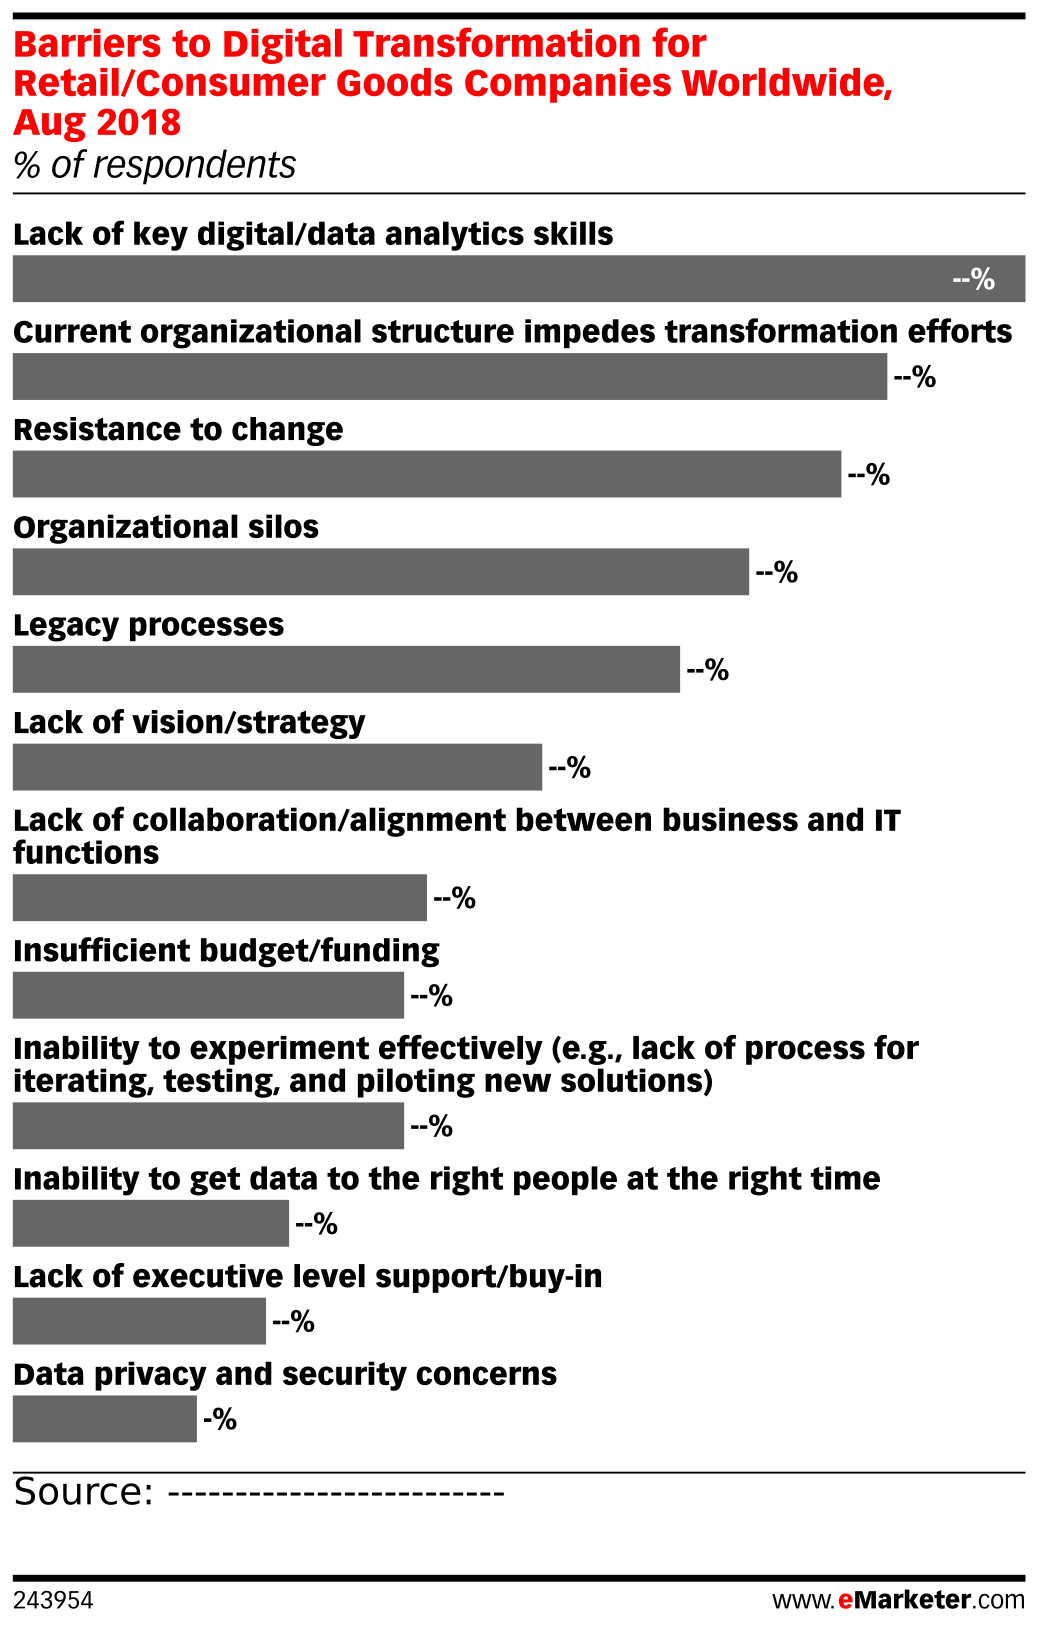 Barriers to Digital Transformation for Retail/Consumer Goods Companies Worldwide, Aug 2018 (% of respondents)